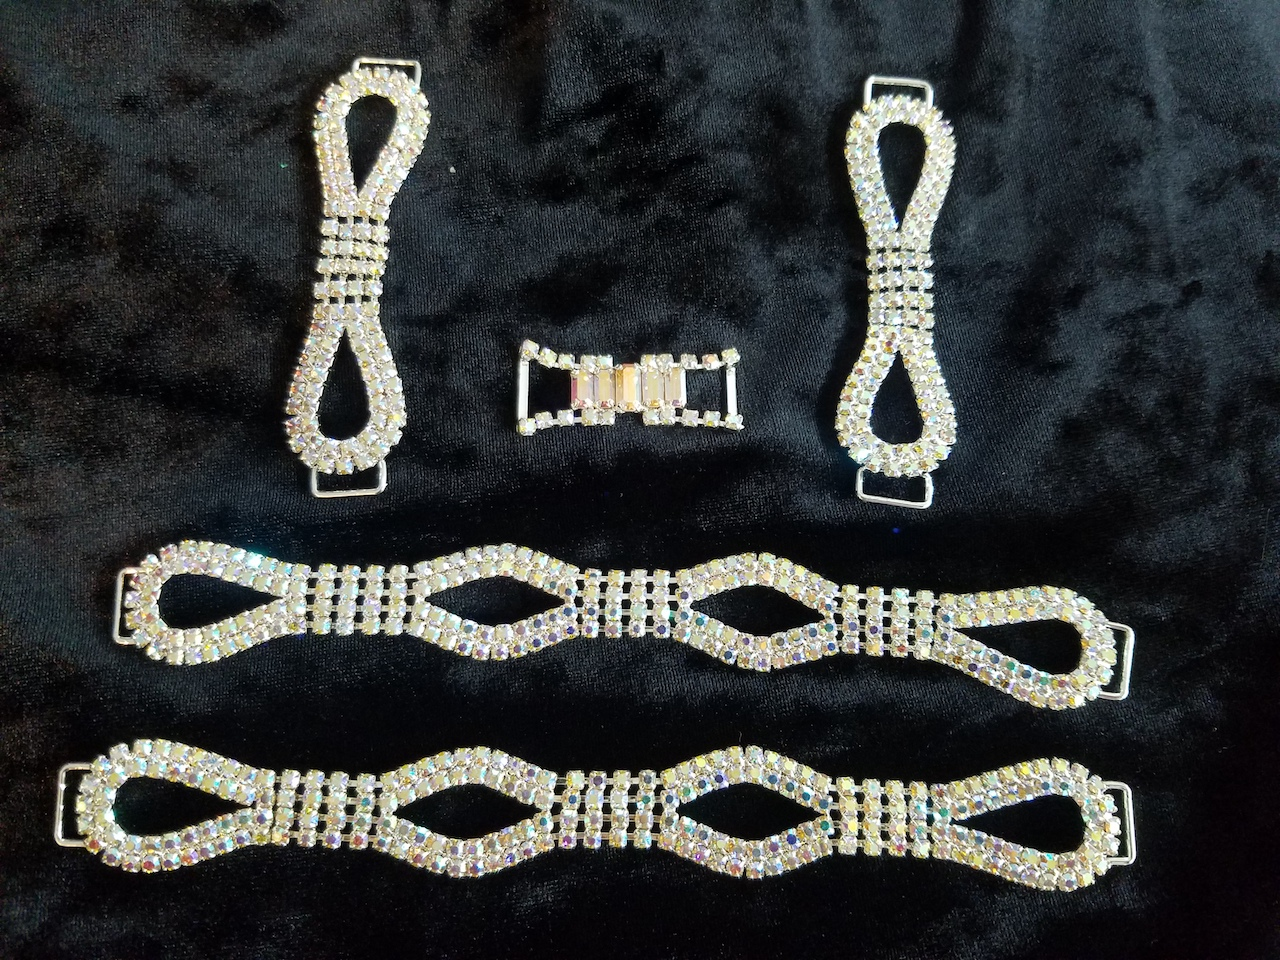 Set D, Silver with clear aurora borealis crystals, $85.00